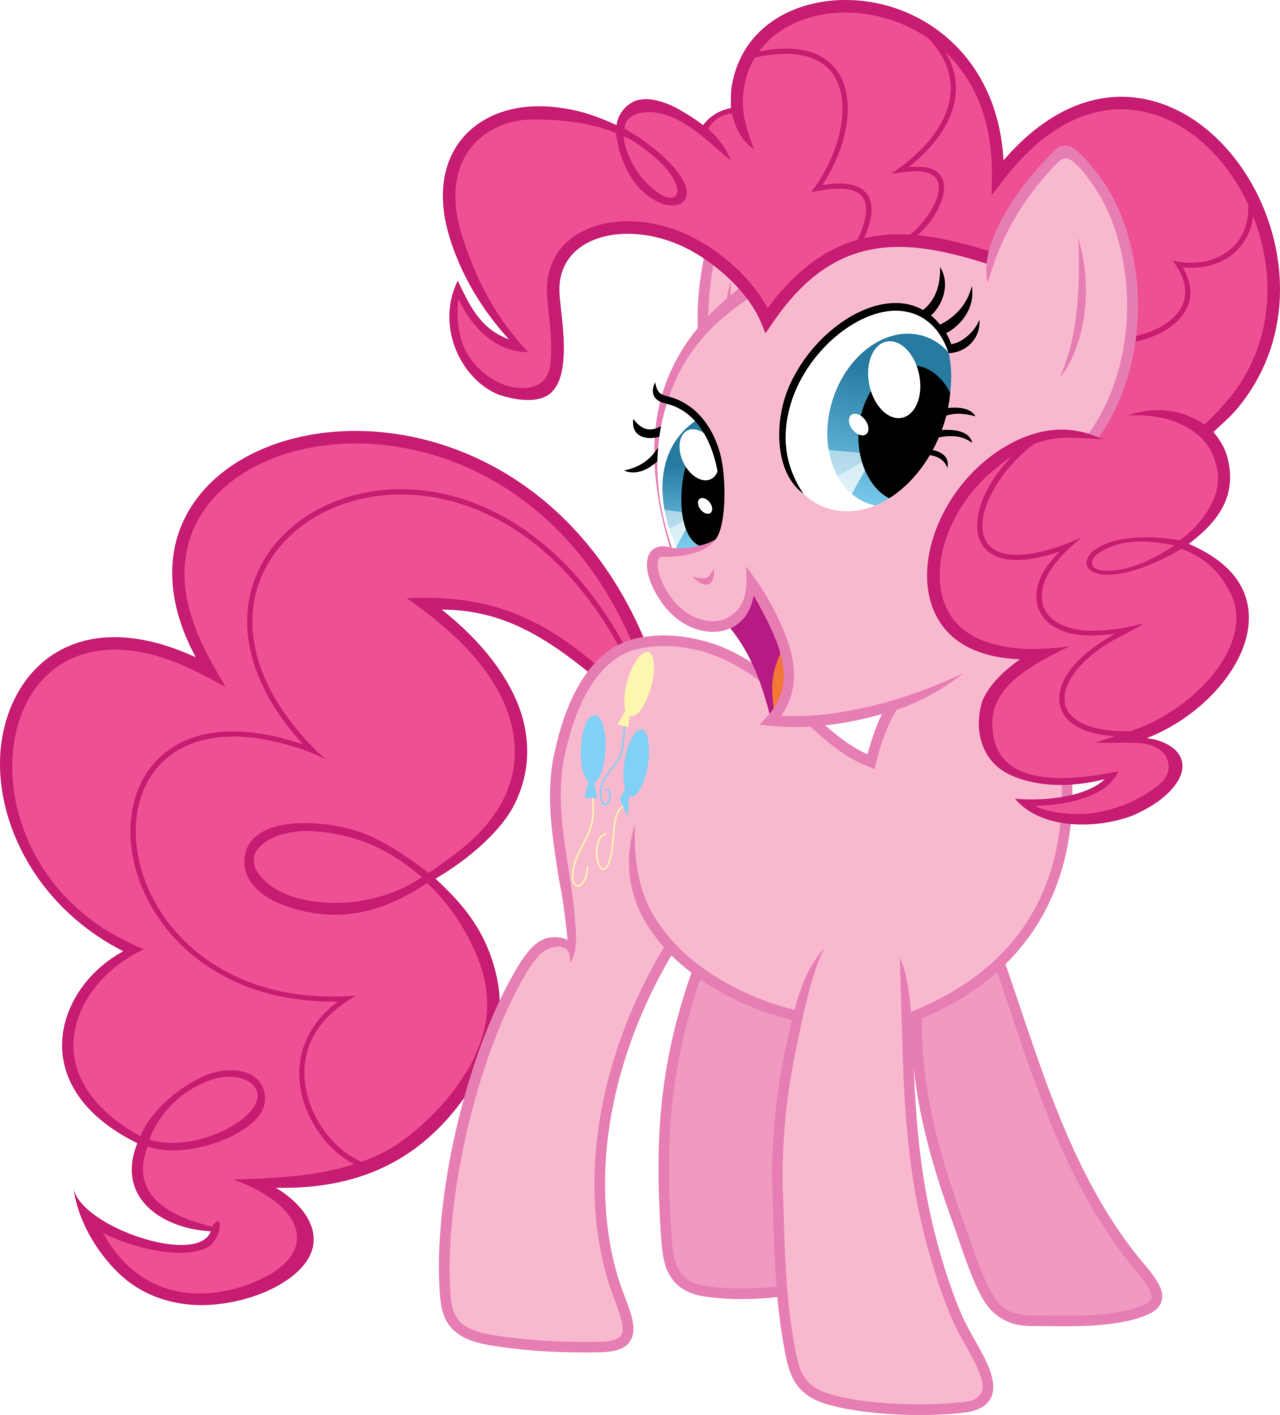 Pinkie Pie S Group Photo Pose By Brainchildeats D4udj9m Png 900 1359 Pinkie Pie My Little Pony Characters All My Little Pony